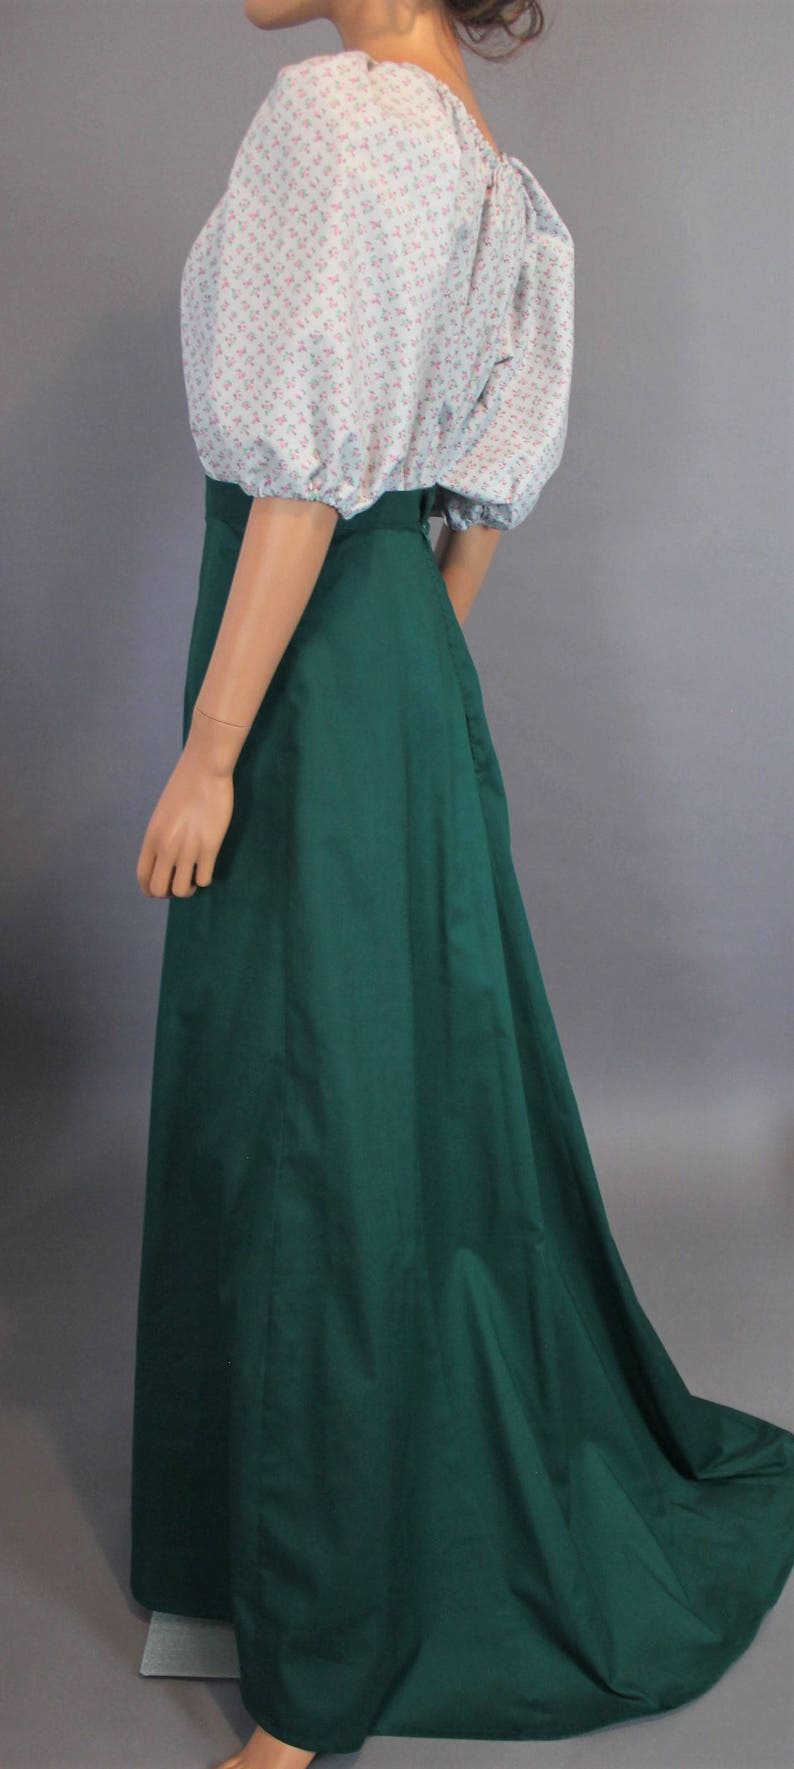 Victorian Skirts | Bustle, Walking, Edwardian Skirts Custom Walking Skirt with Train for Edwardian Costume ~ Agnes $208.00 AT vintagedancer.com